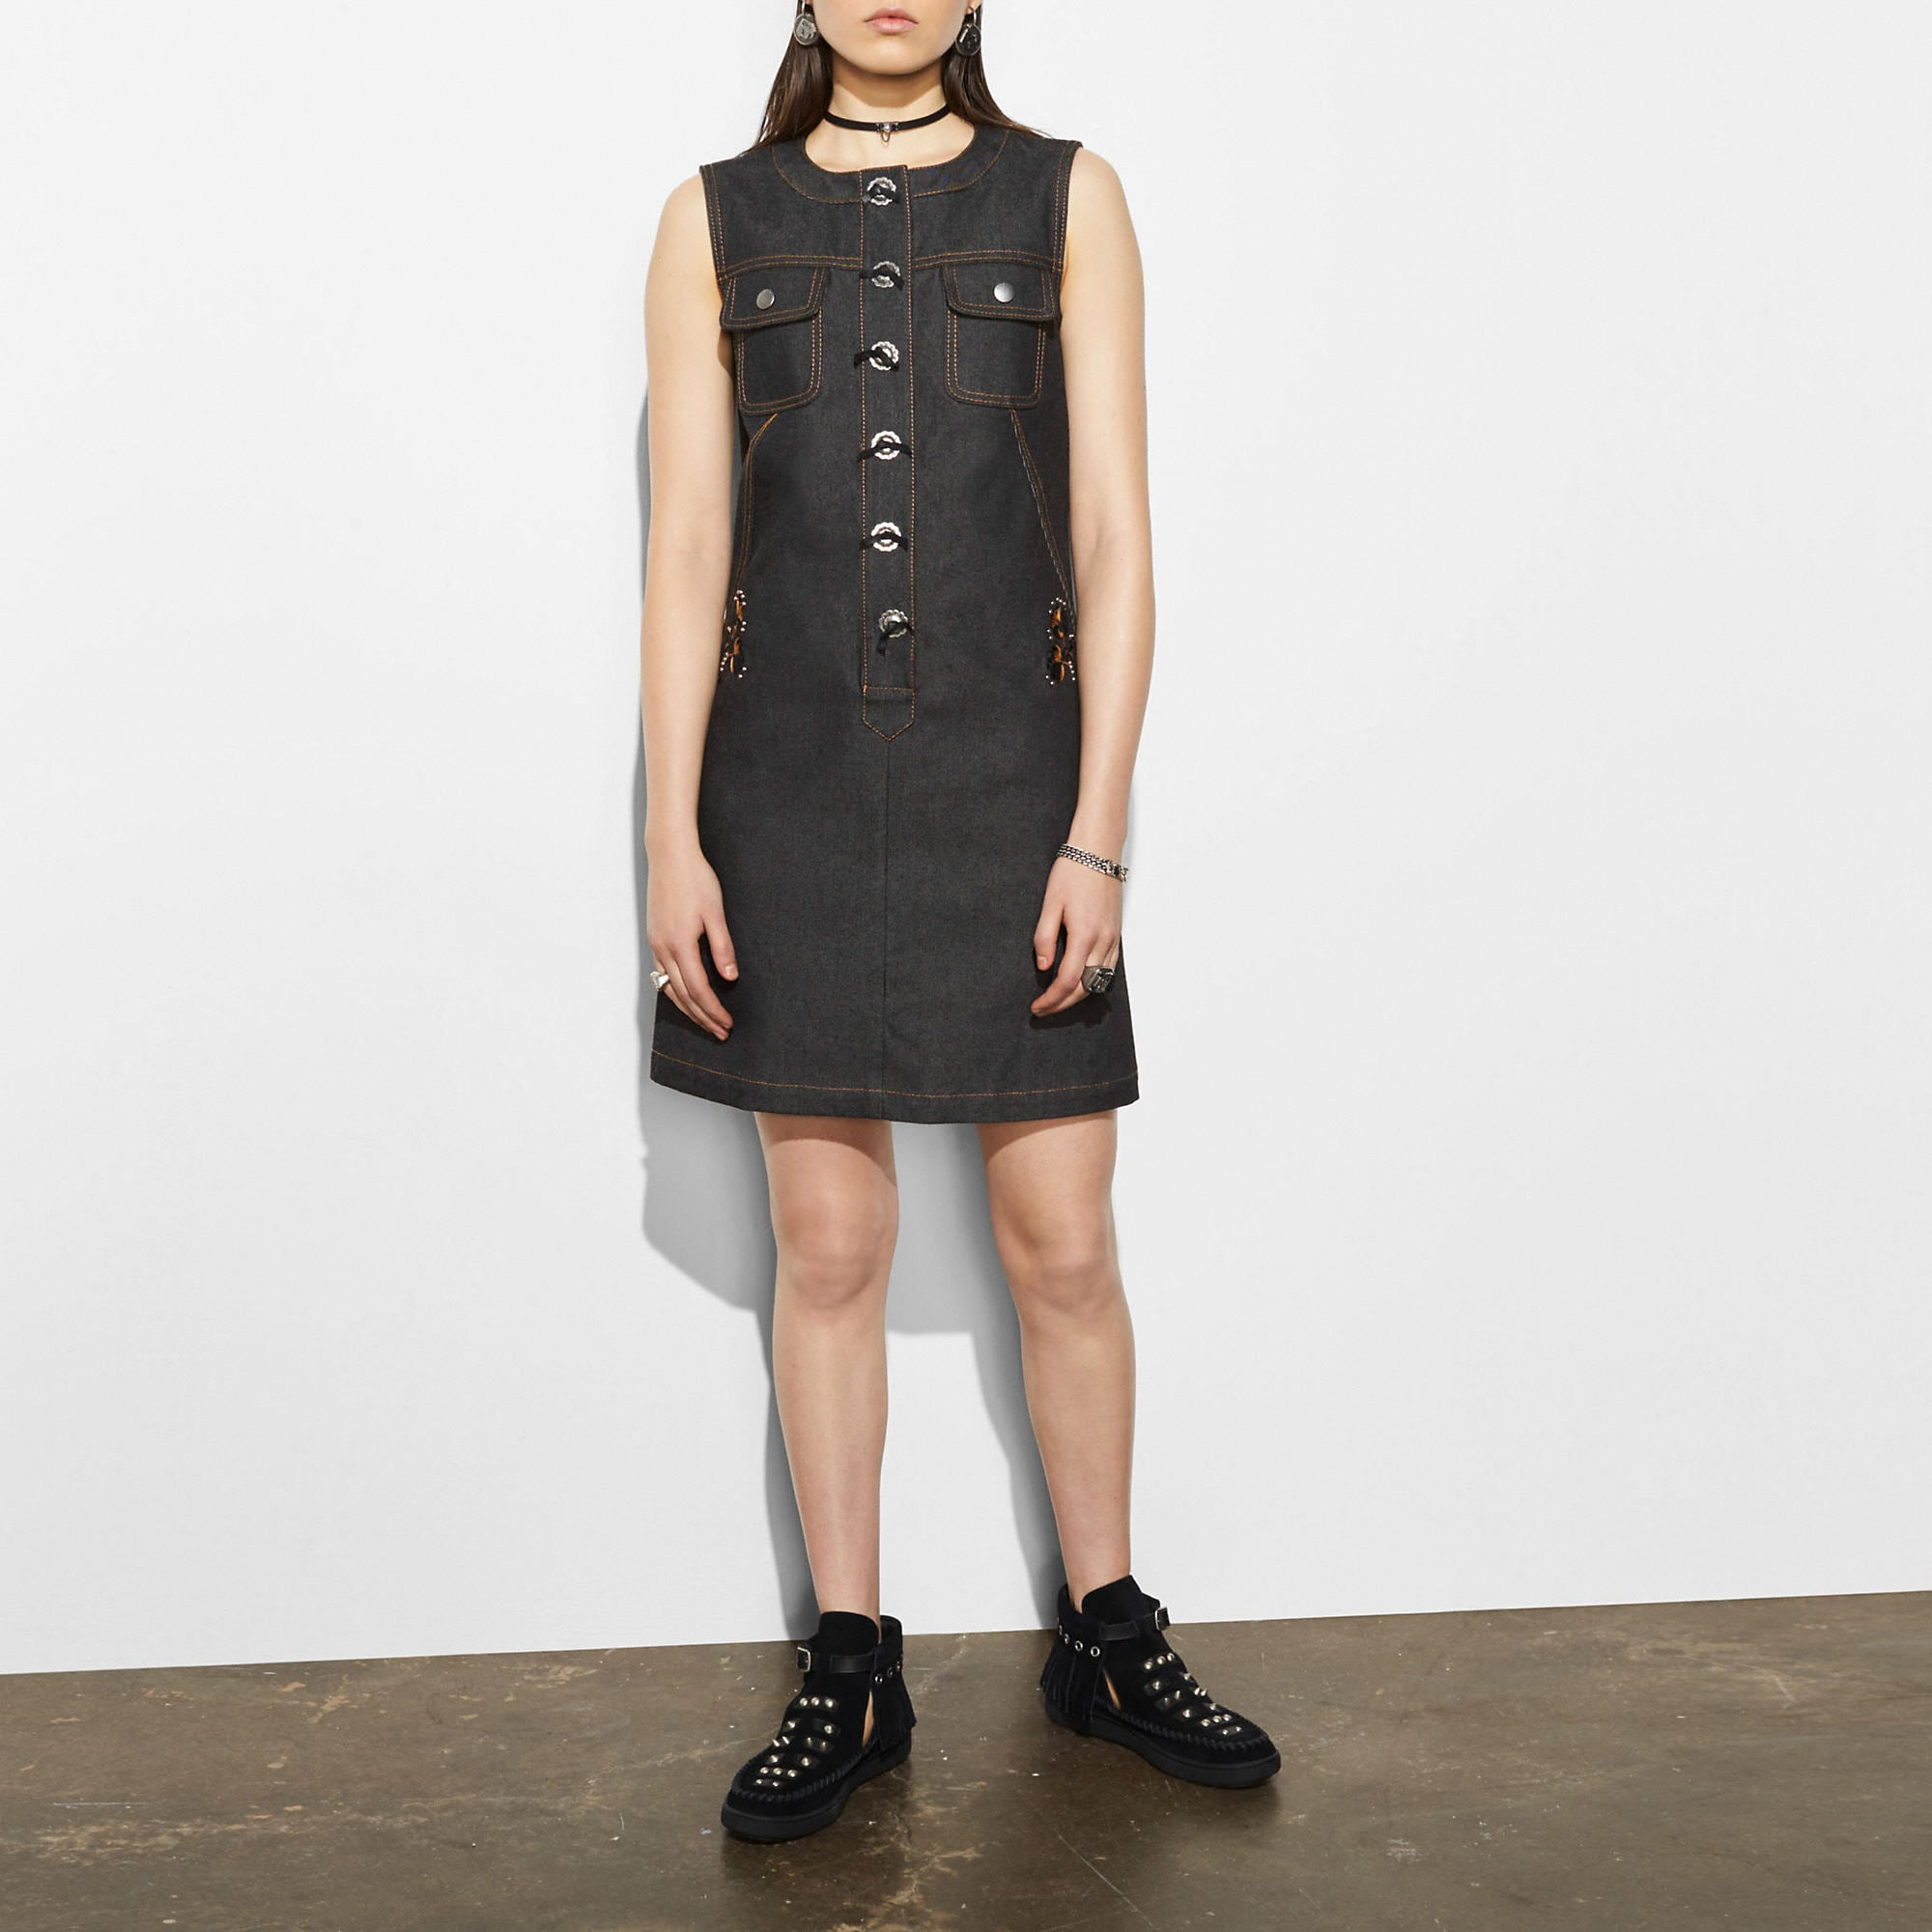 Coach Sleeveless Denim Dress